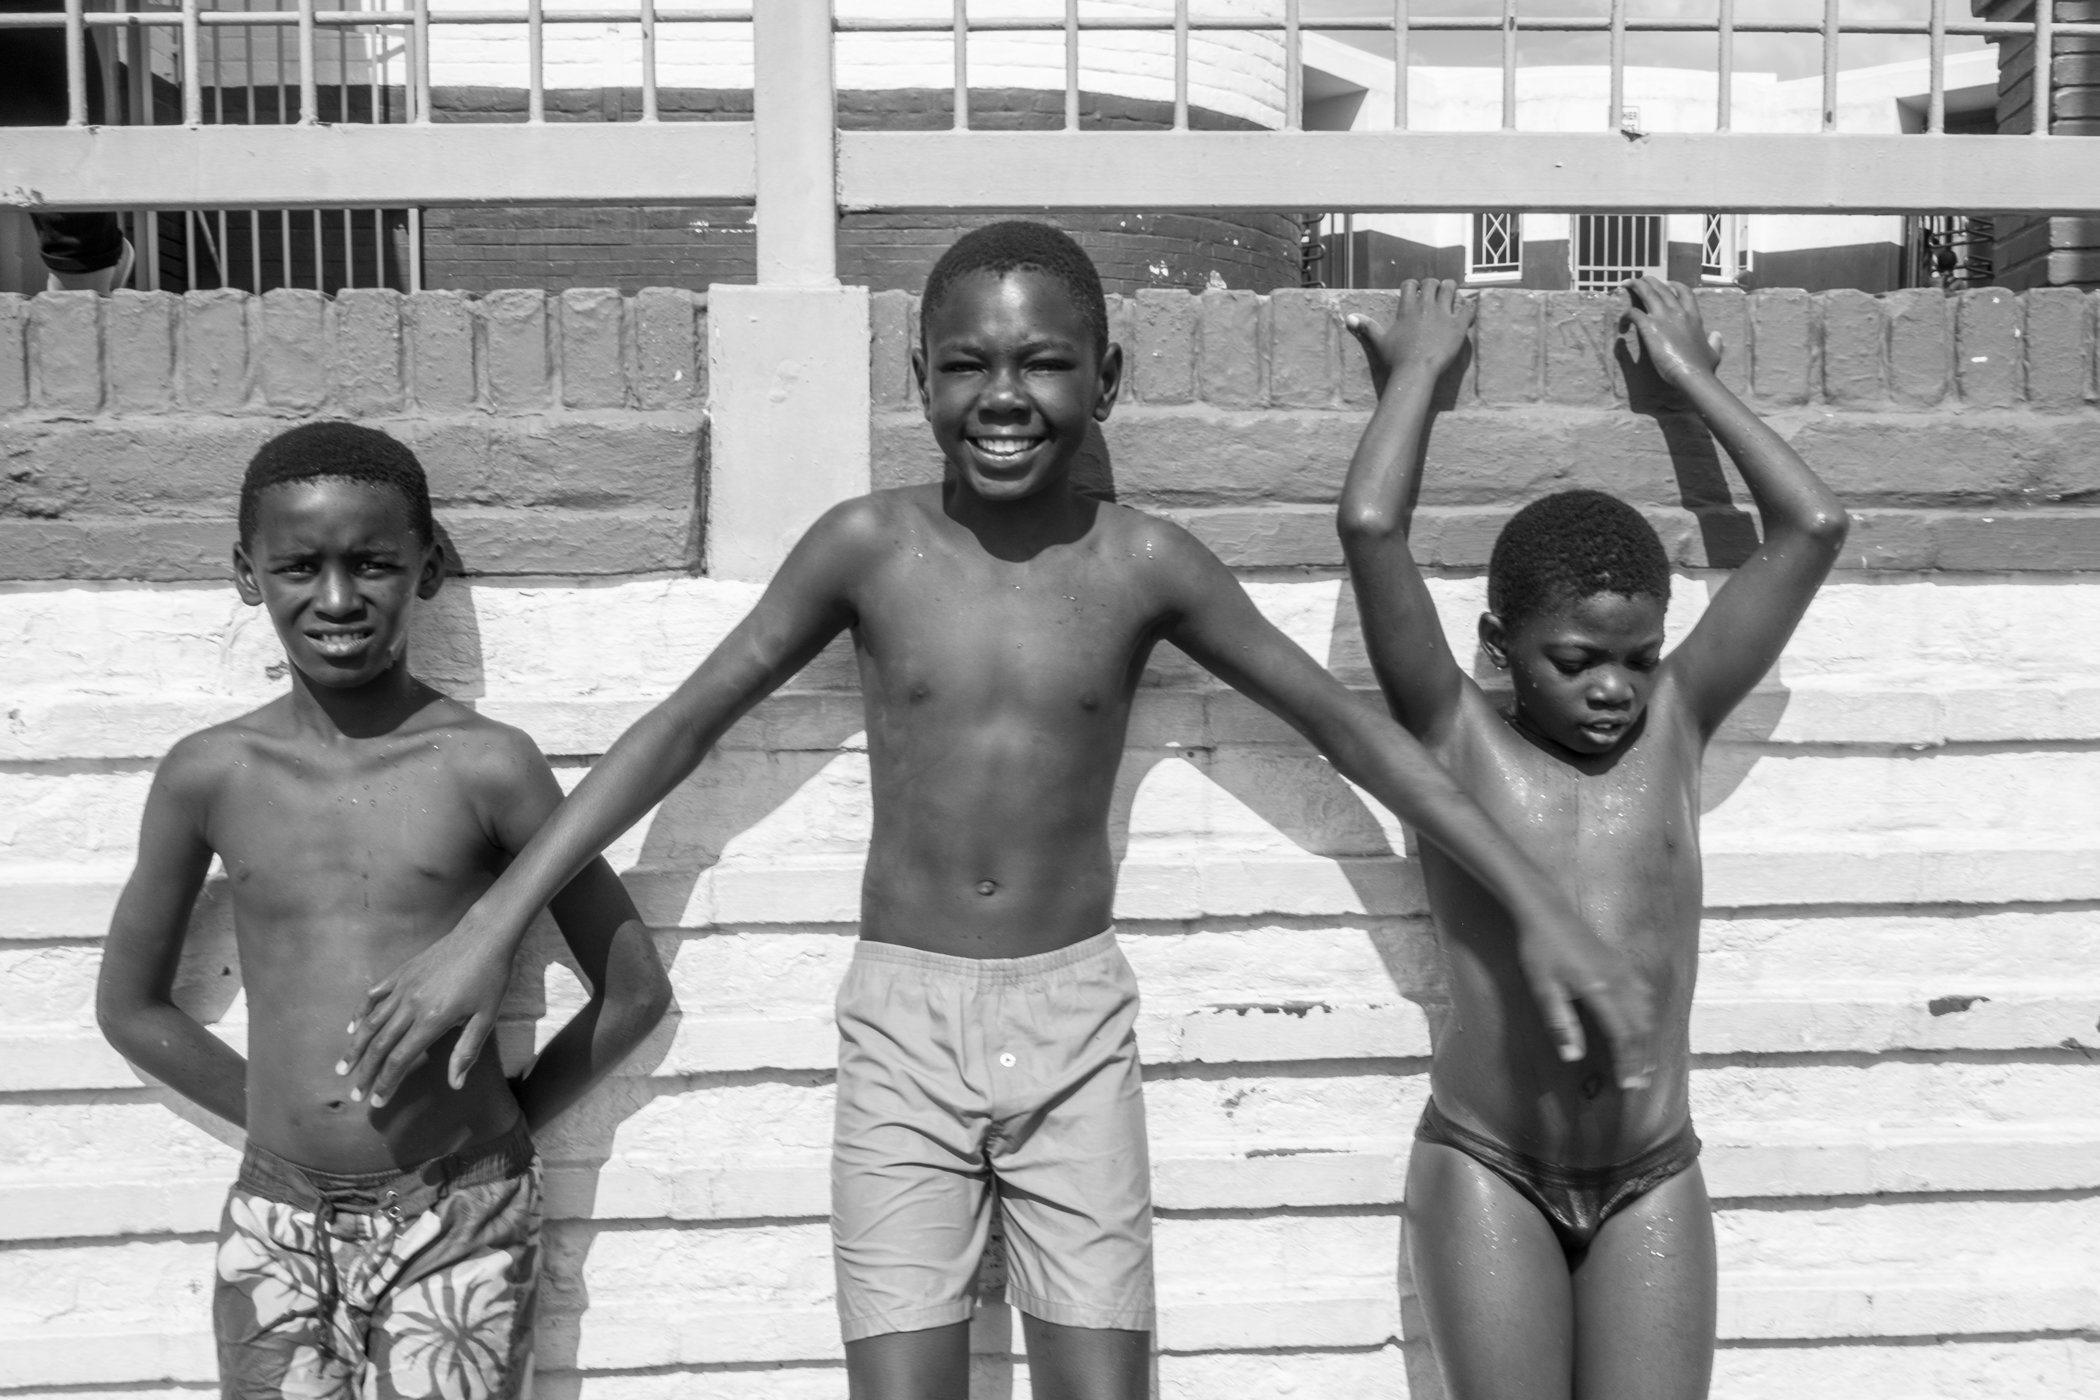 Africans_Can_Swim_Series_Series-9197.jpg